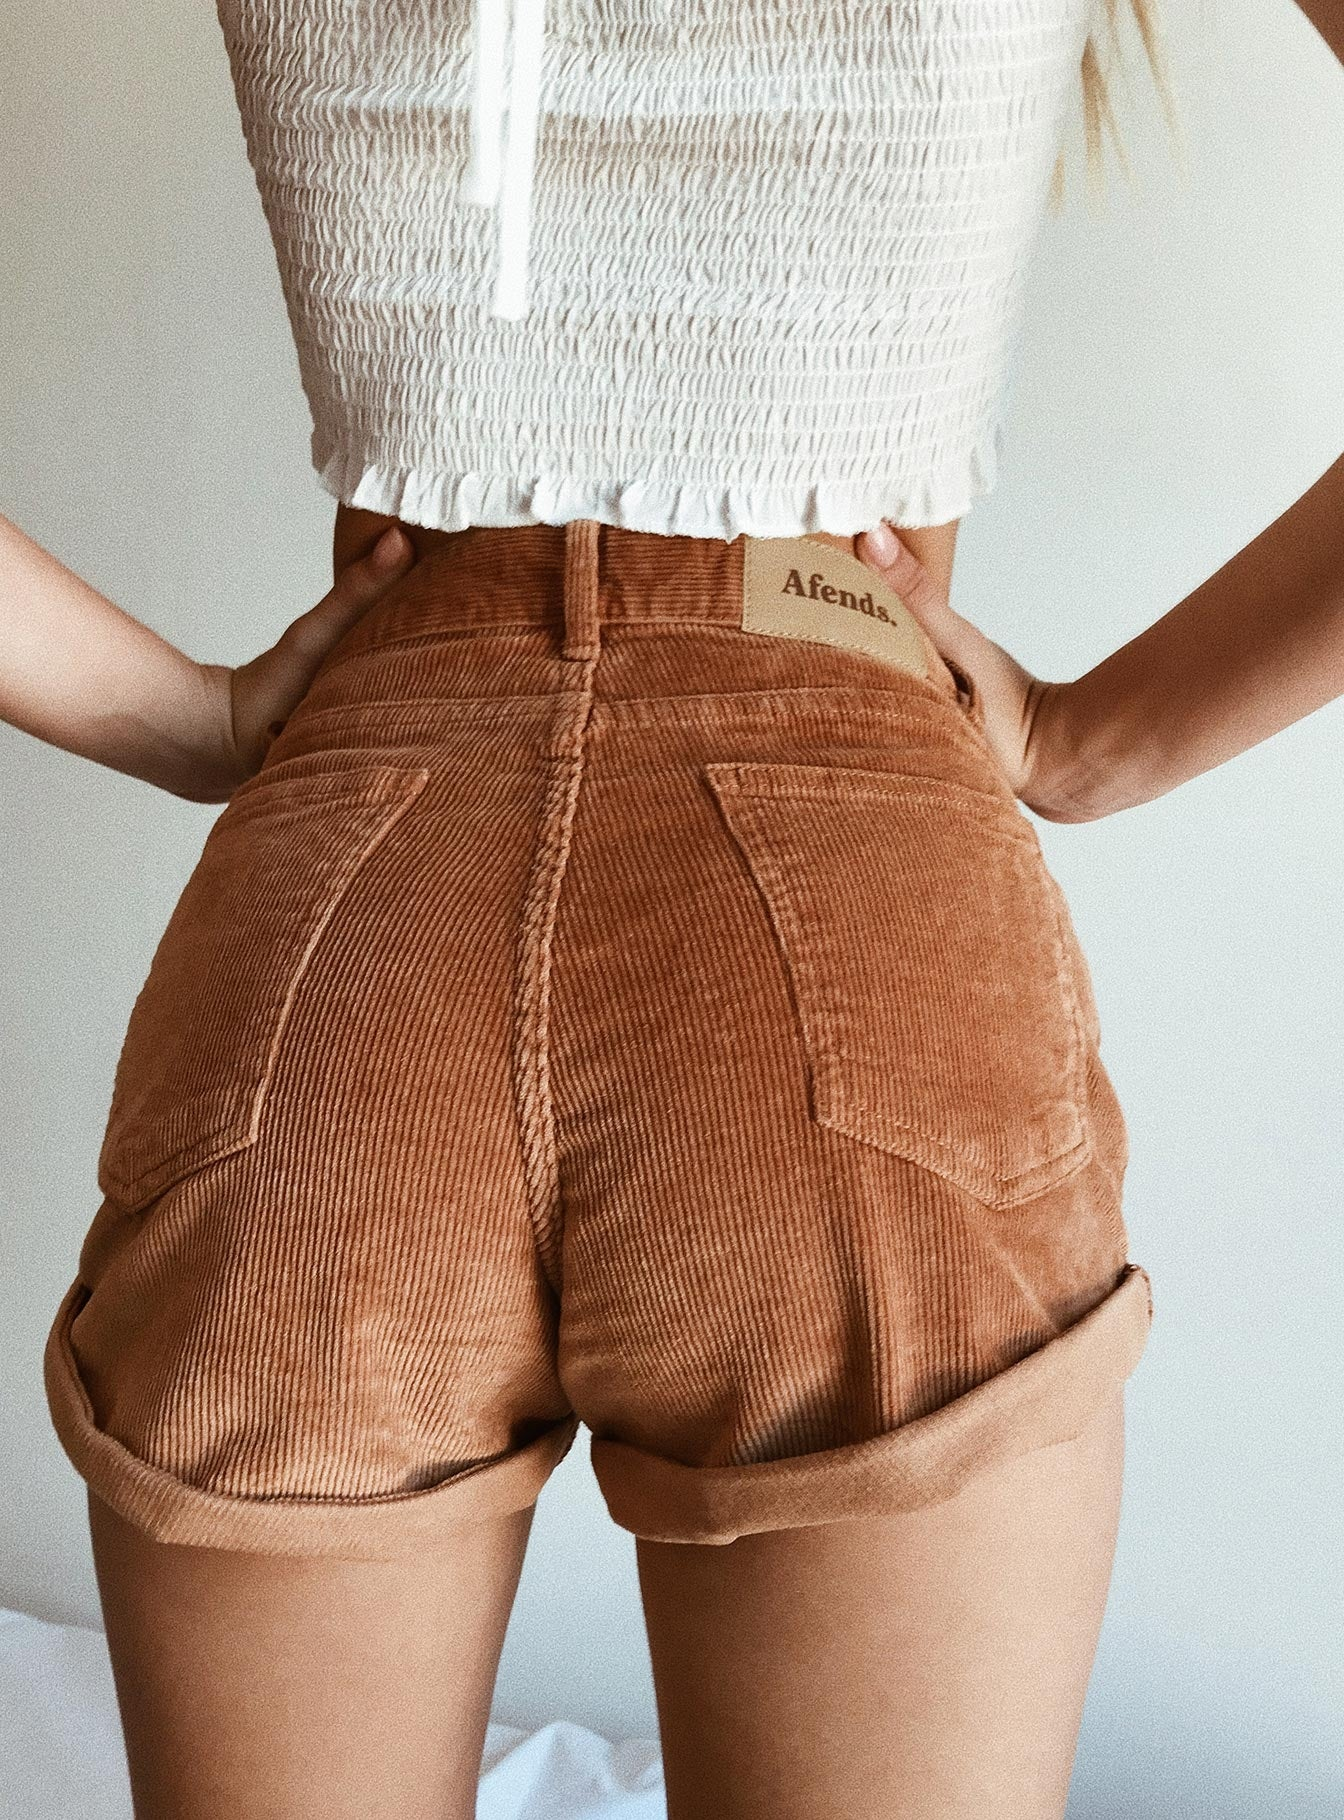 Afends Tyler Cord Corduroy Shorts Light Tan